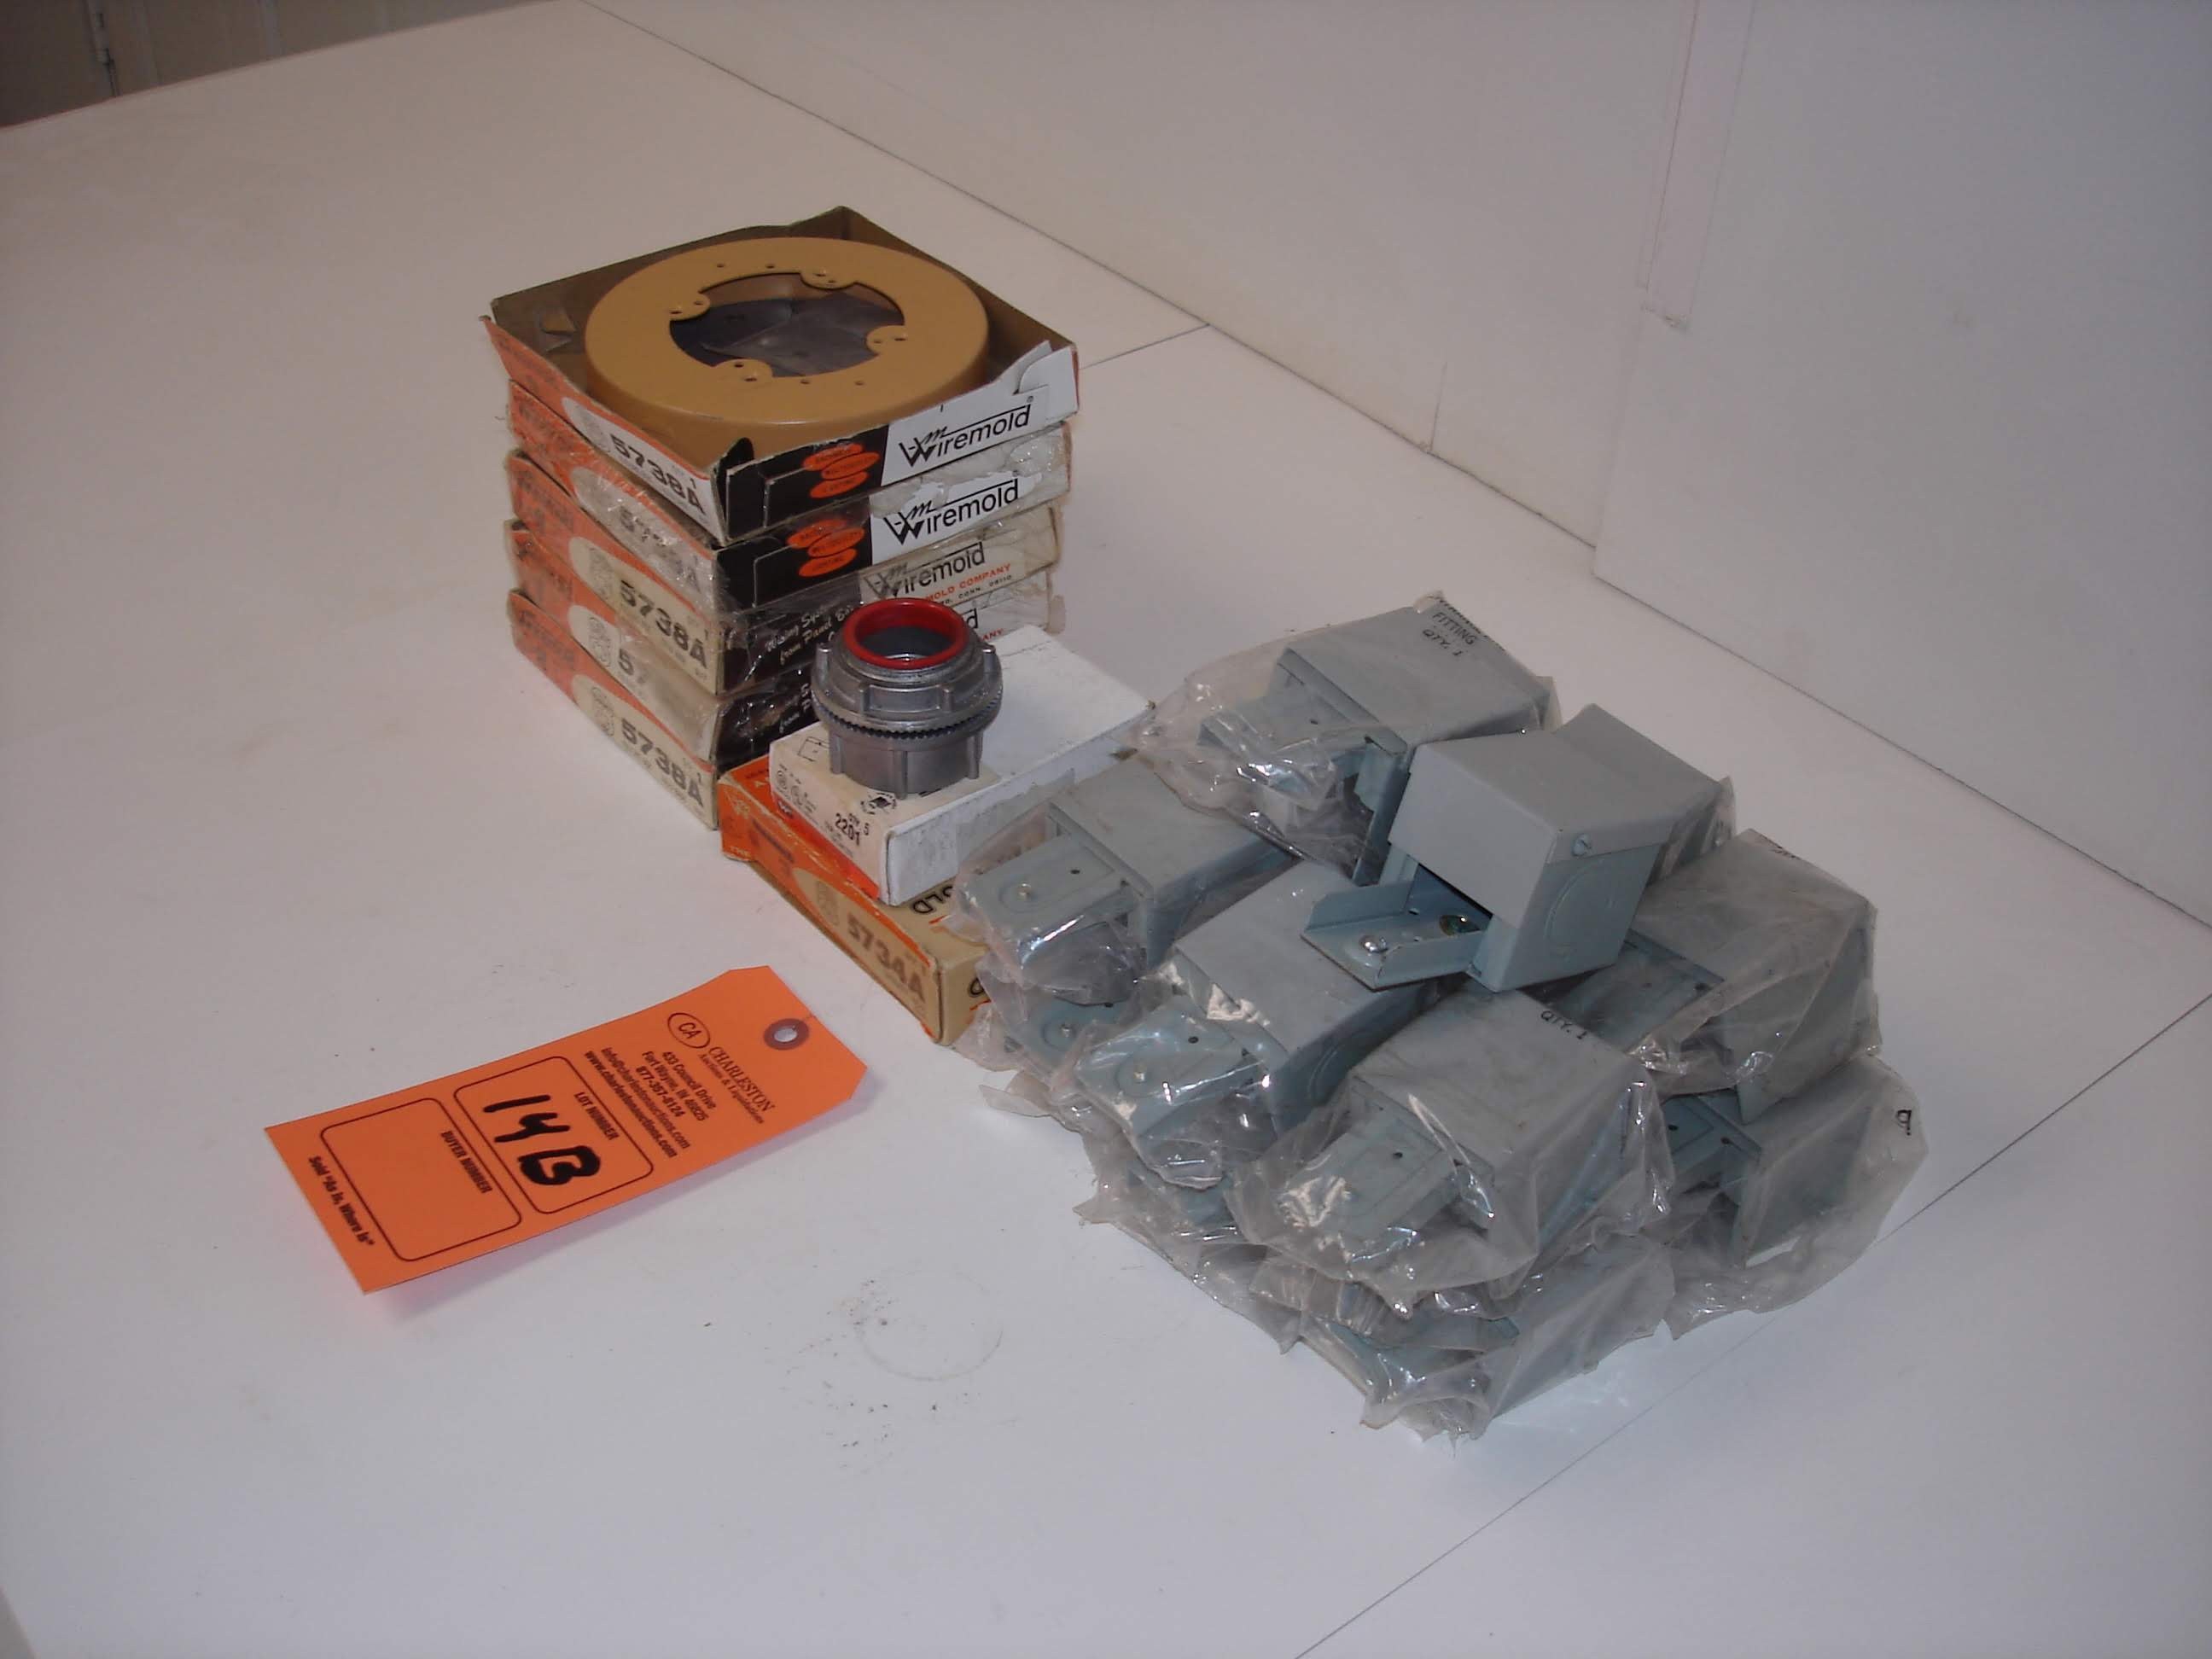 Lot 14B - (20+) MISC WIREMOLD FIXTURE BOXES AND MORE: WIREMOLD 5738A AND ALL OTHER ITEMS INCLUDED IN PHOTOS!